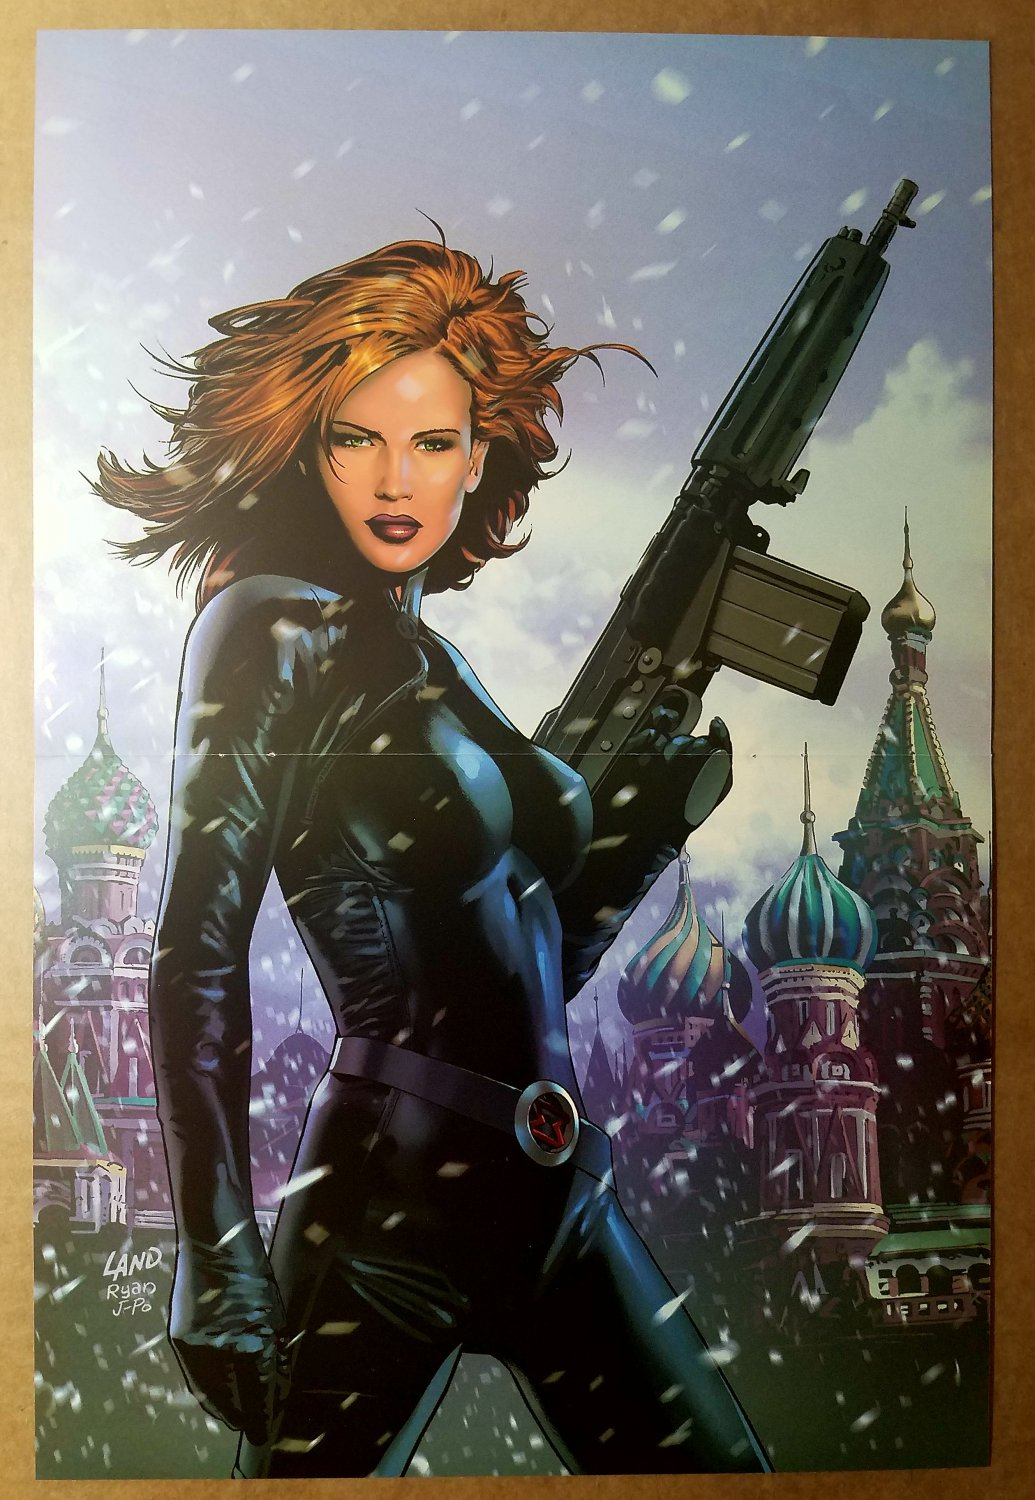 Black Widow Avengers Marvel Comics Poster by Greg Land